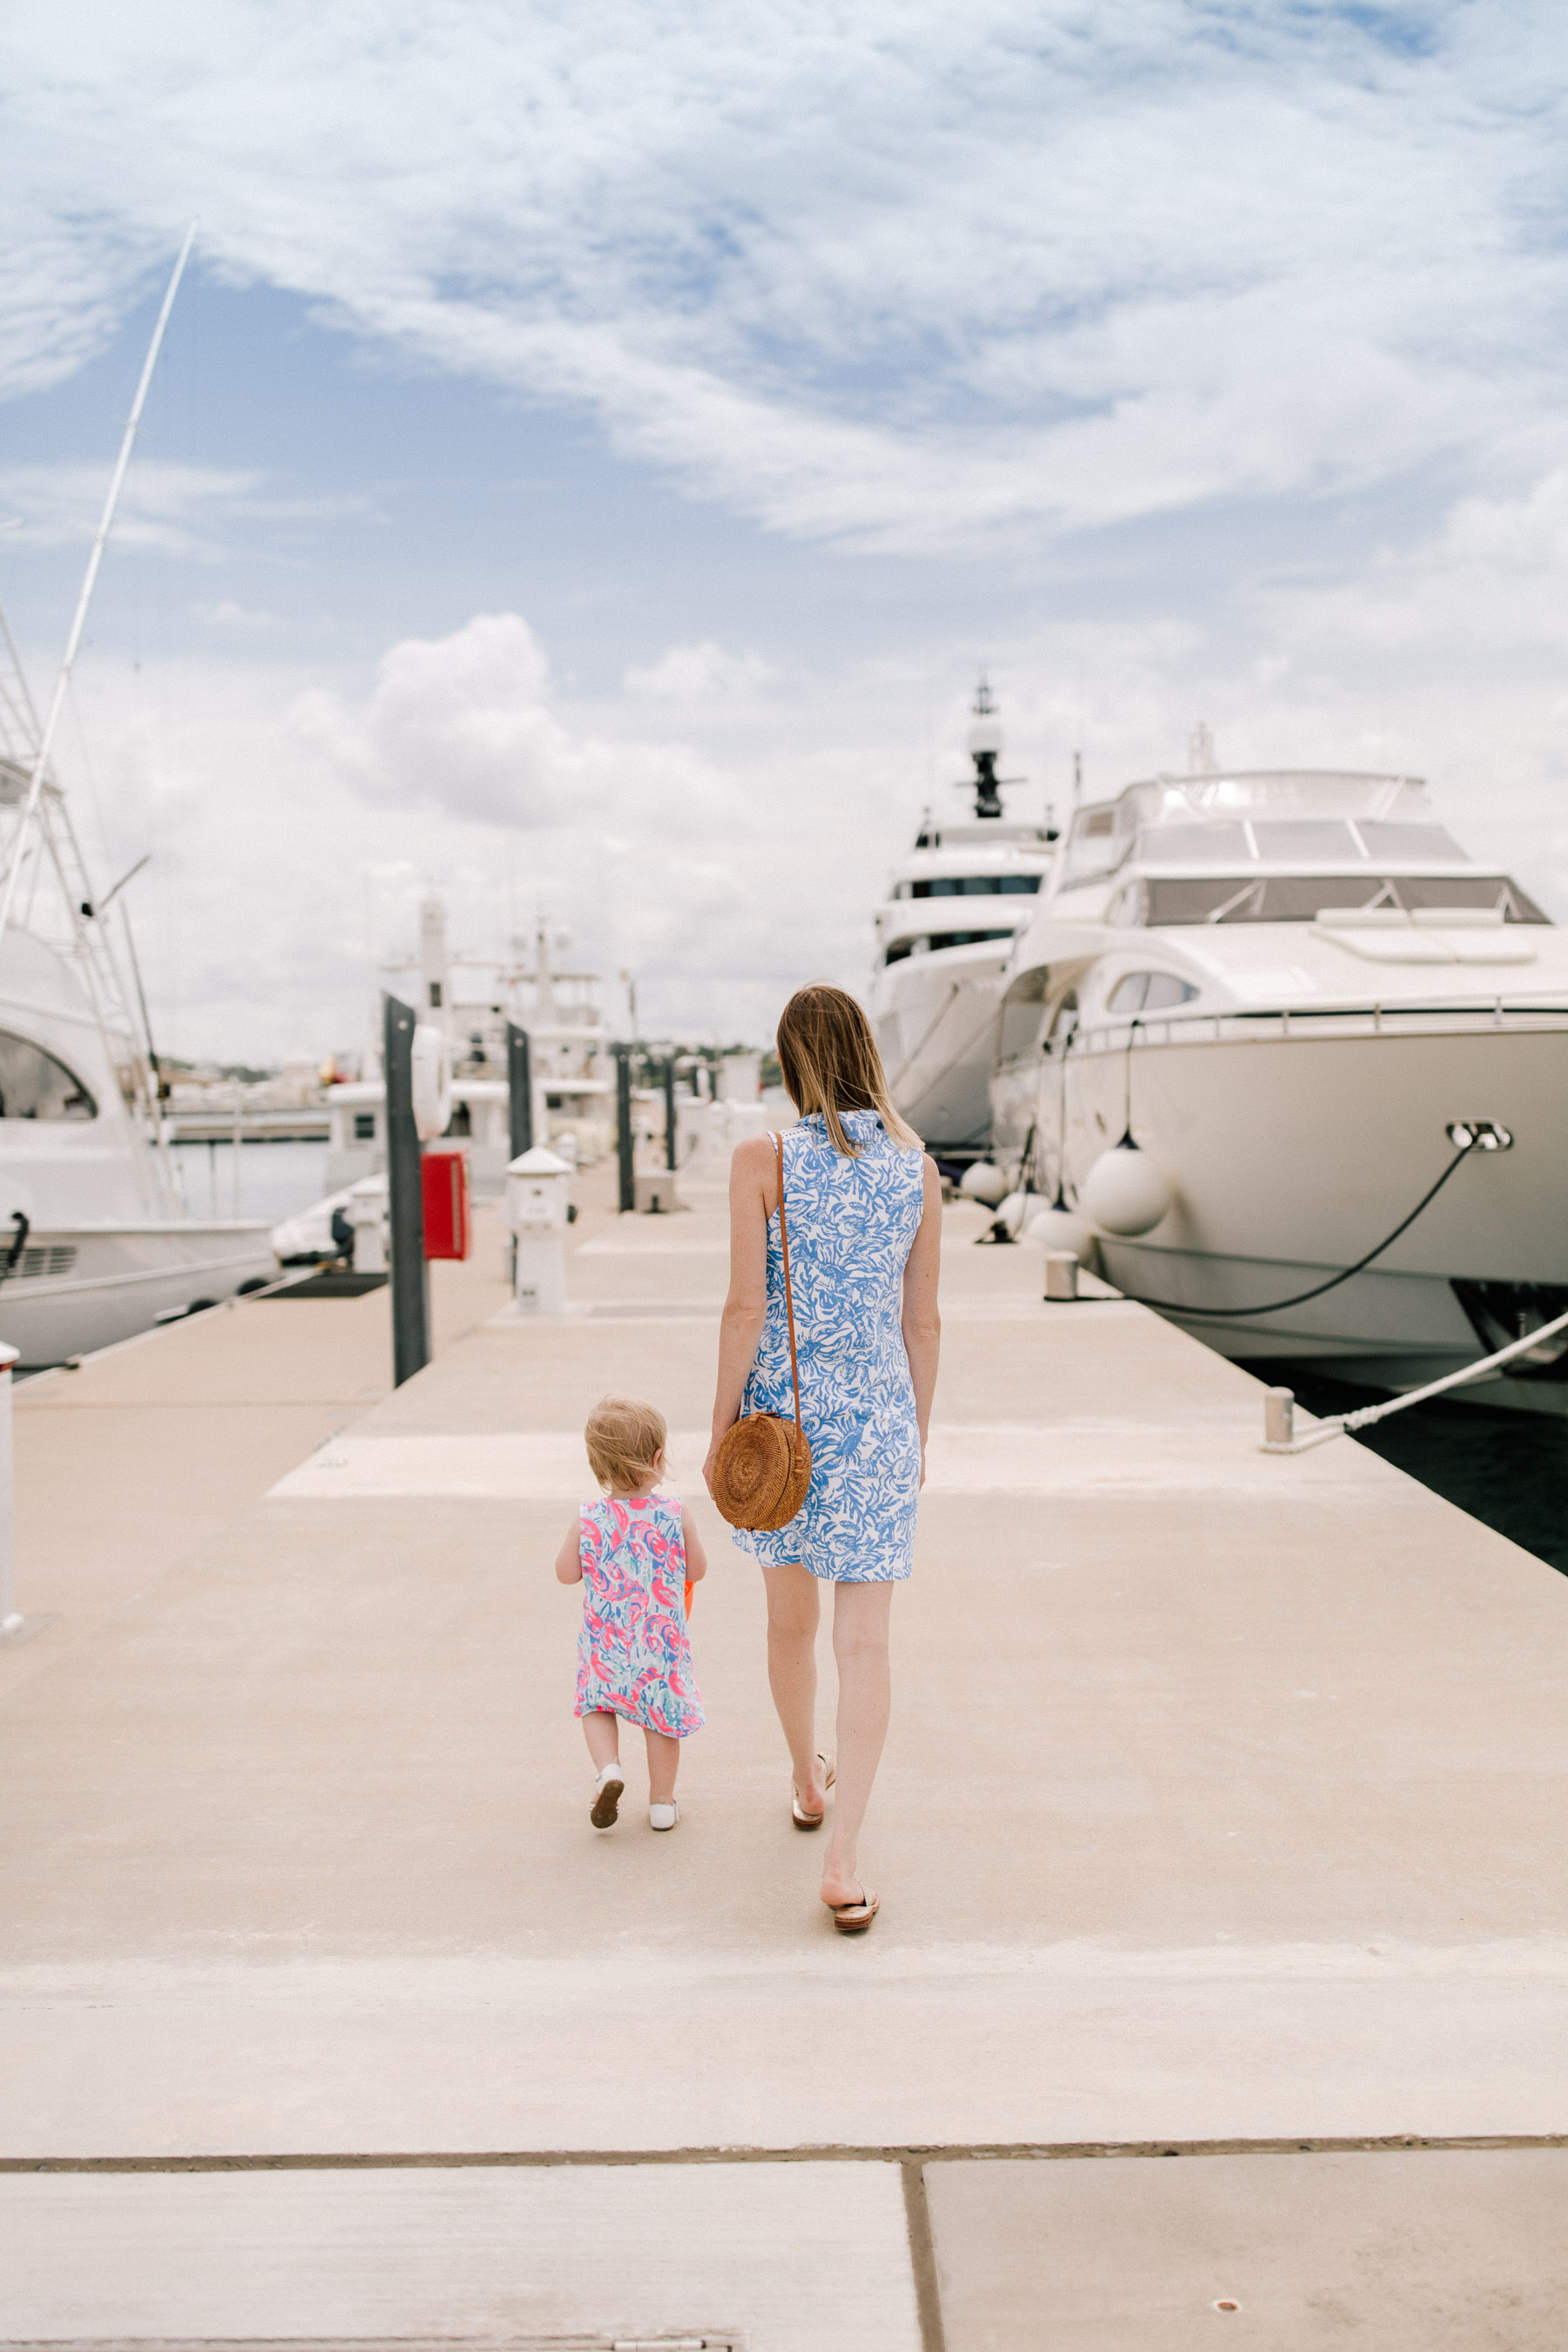 Kelly and Baby Emma are wearing a Lilly Pulitzer dress - Kelly in the City